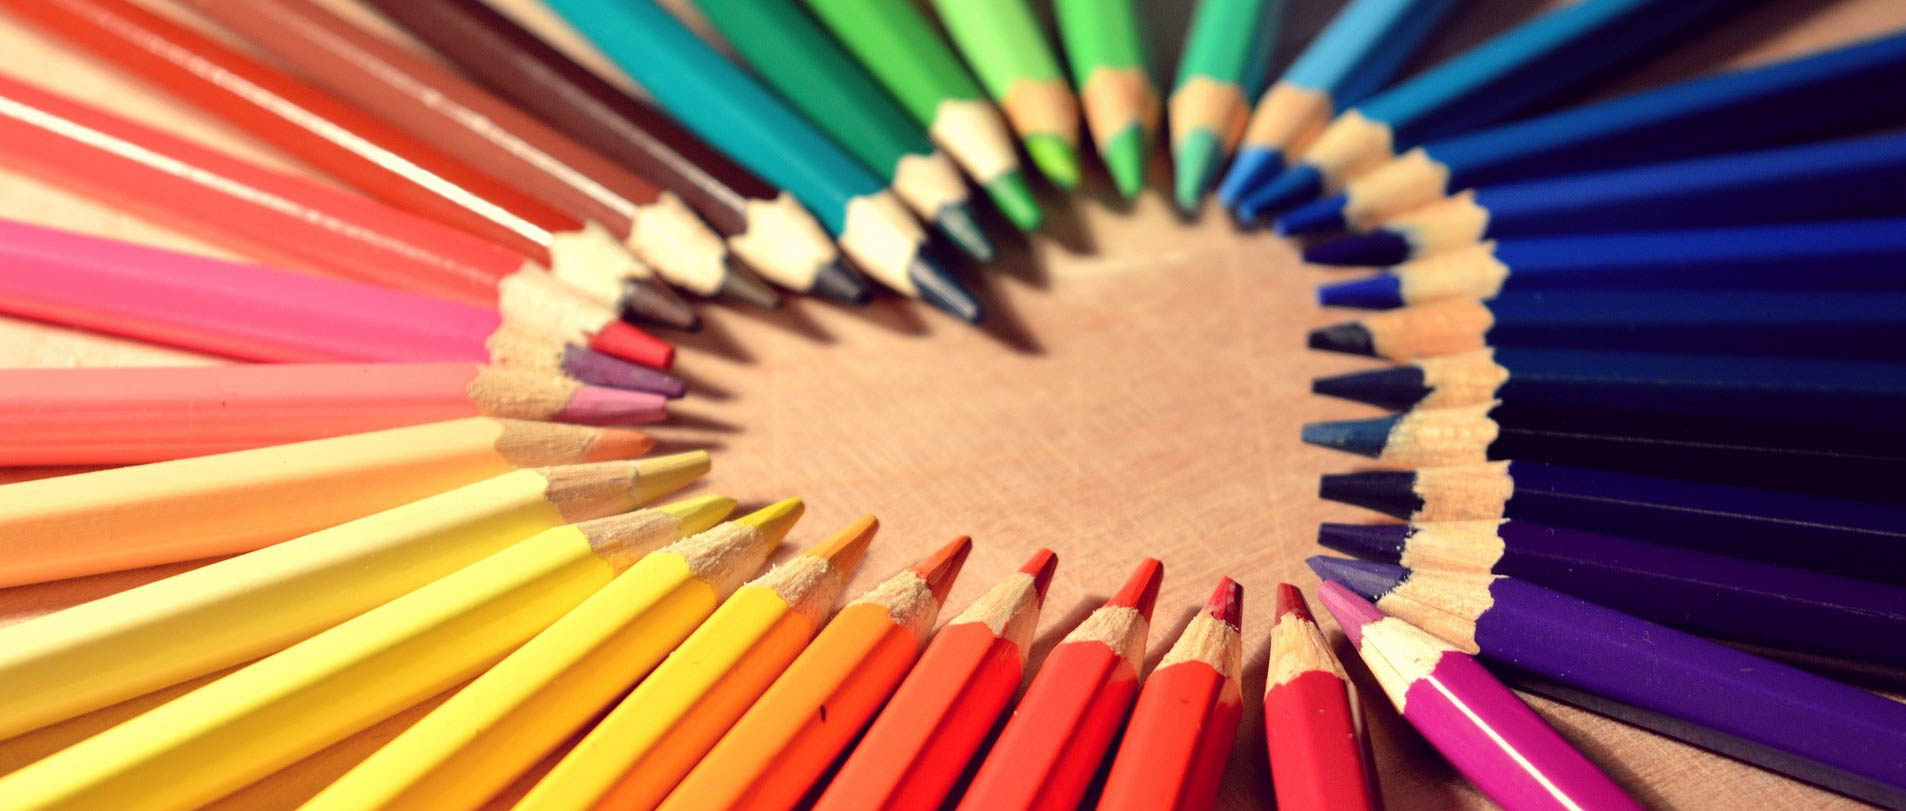 Colored-pencils-art-heart-e1456240258469